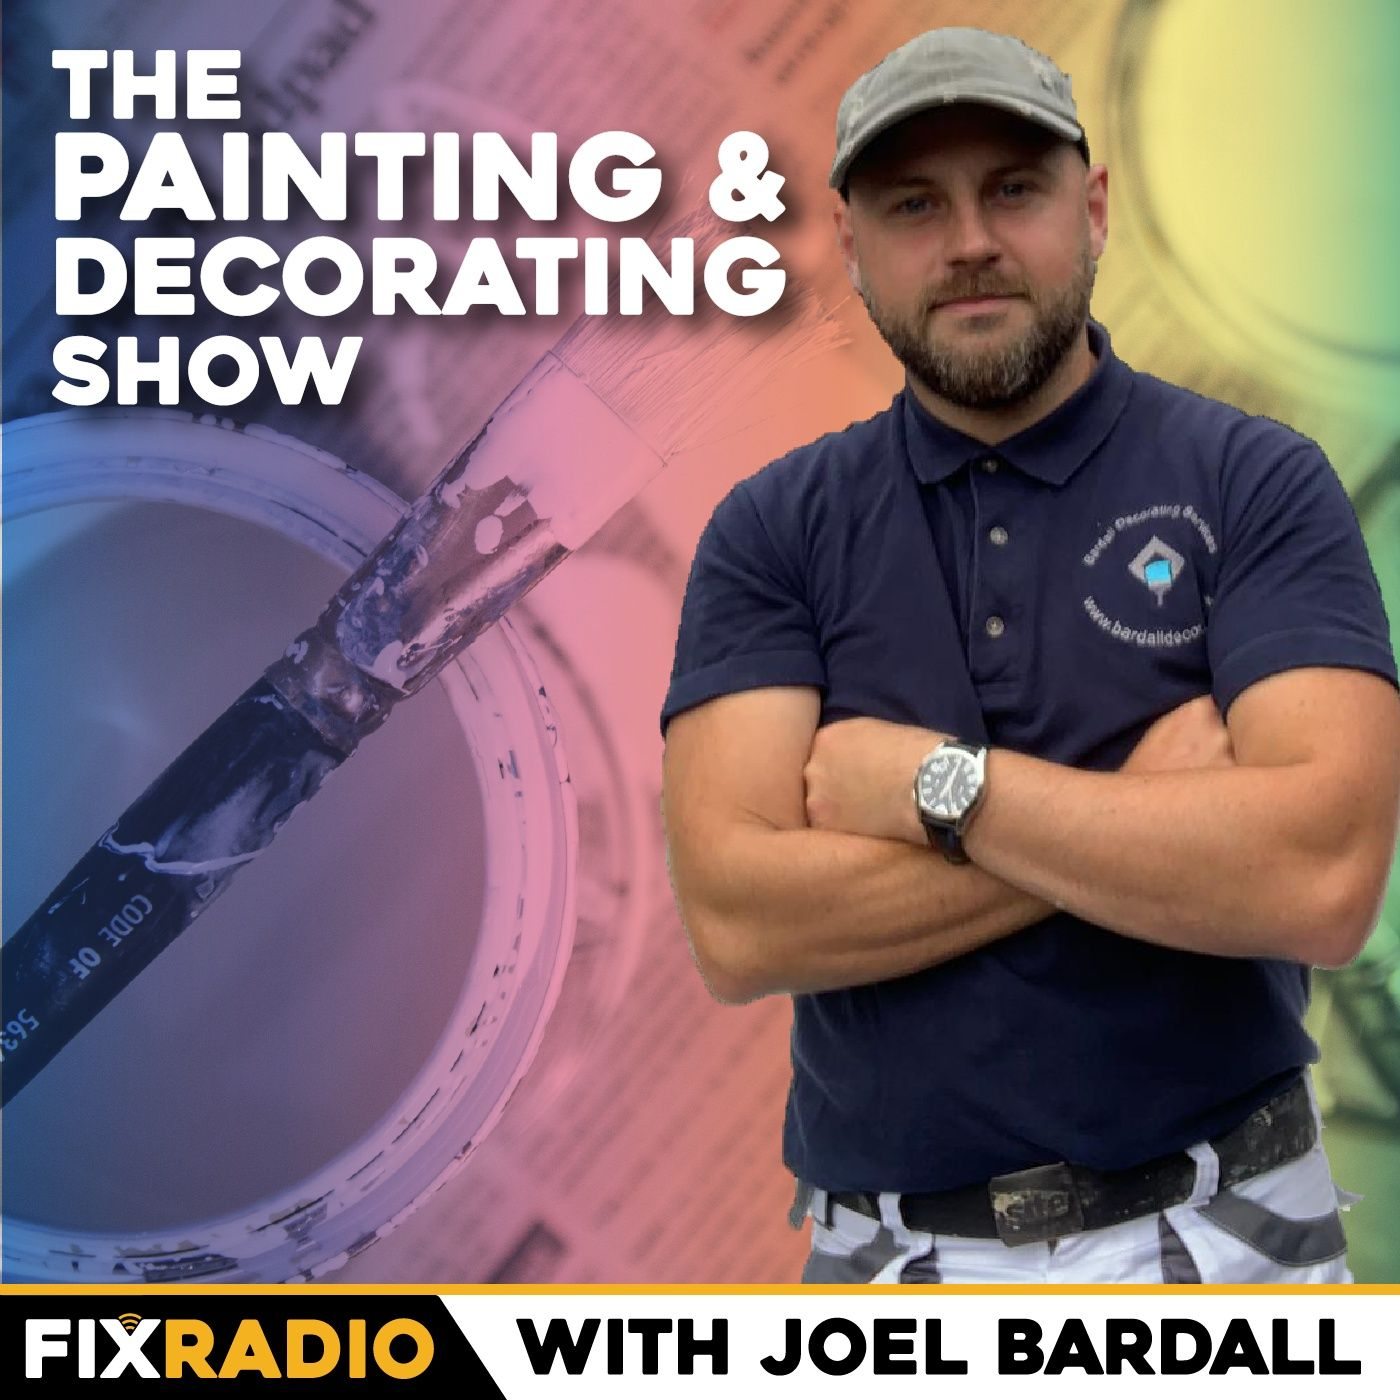 The Painting and Decorating Show